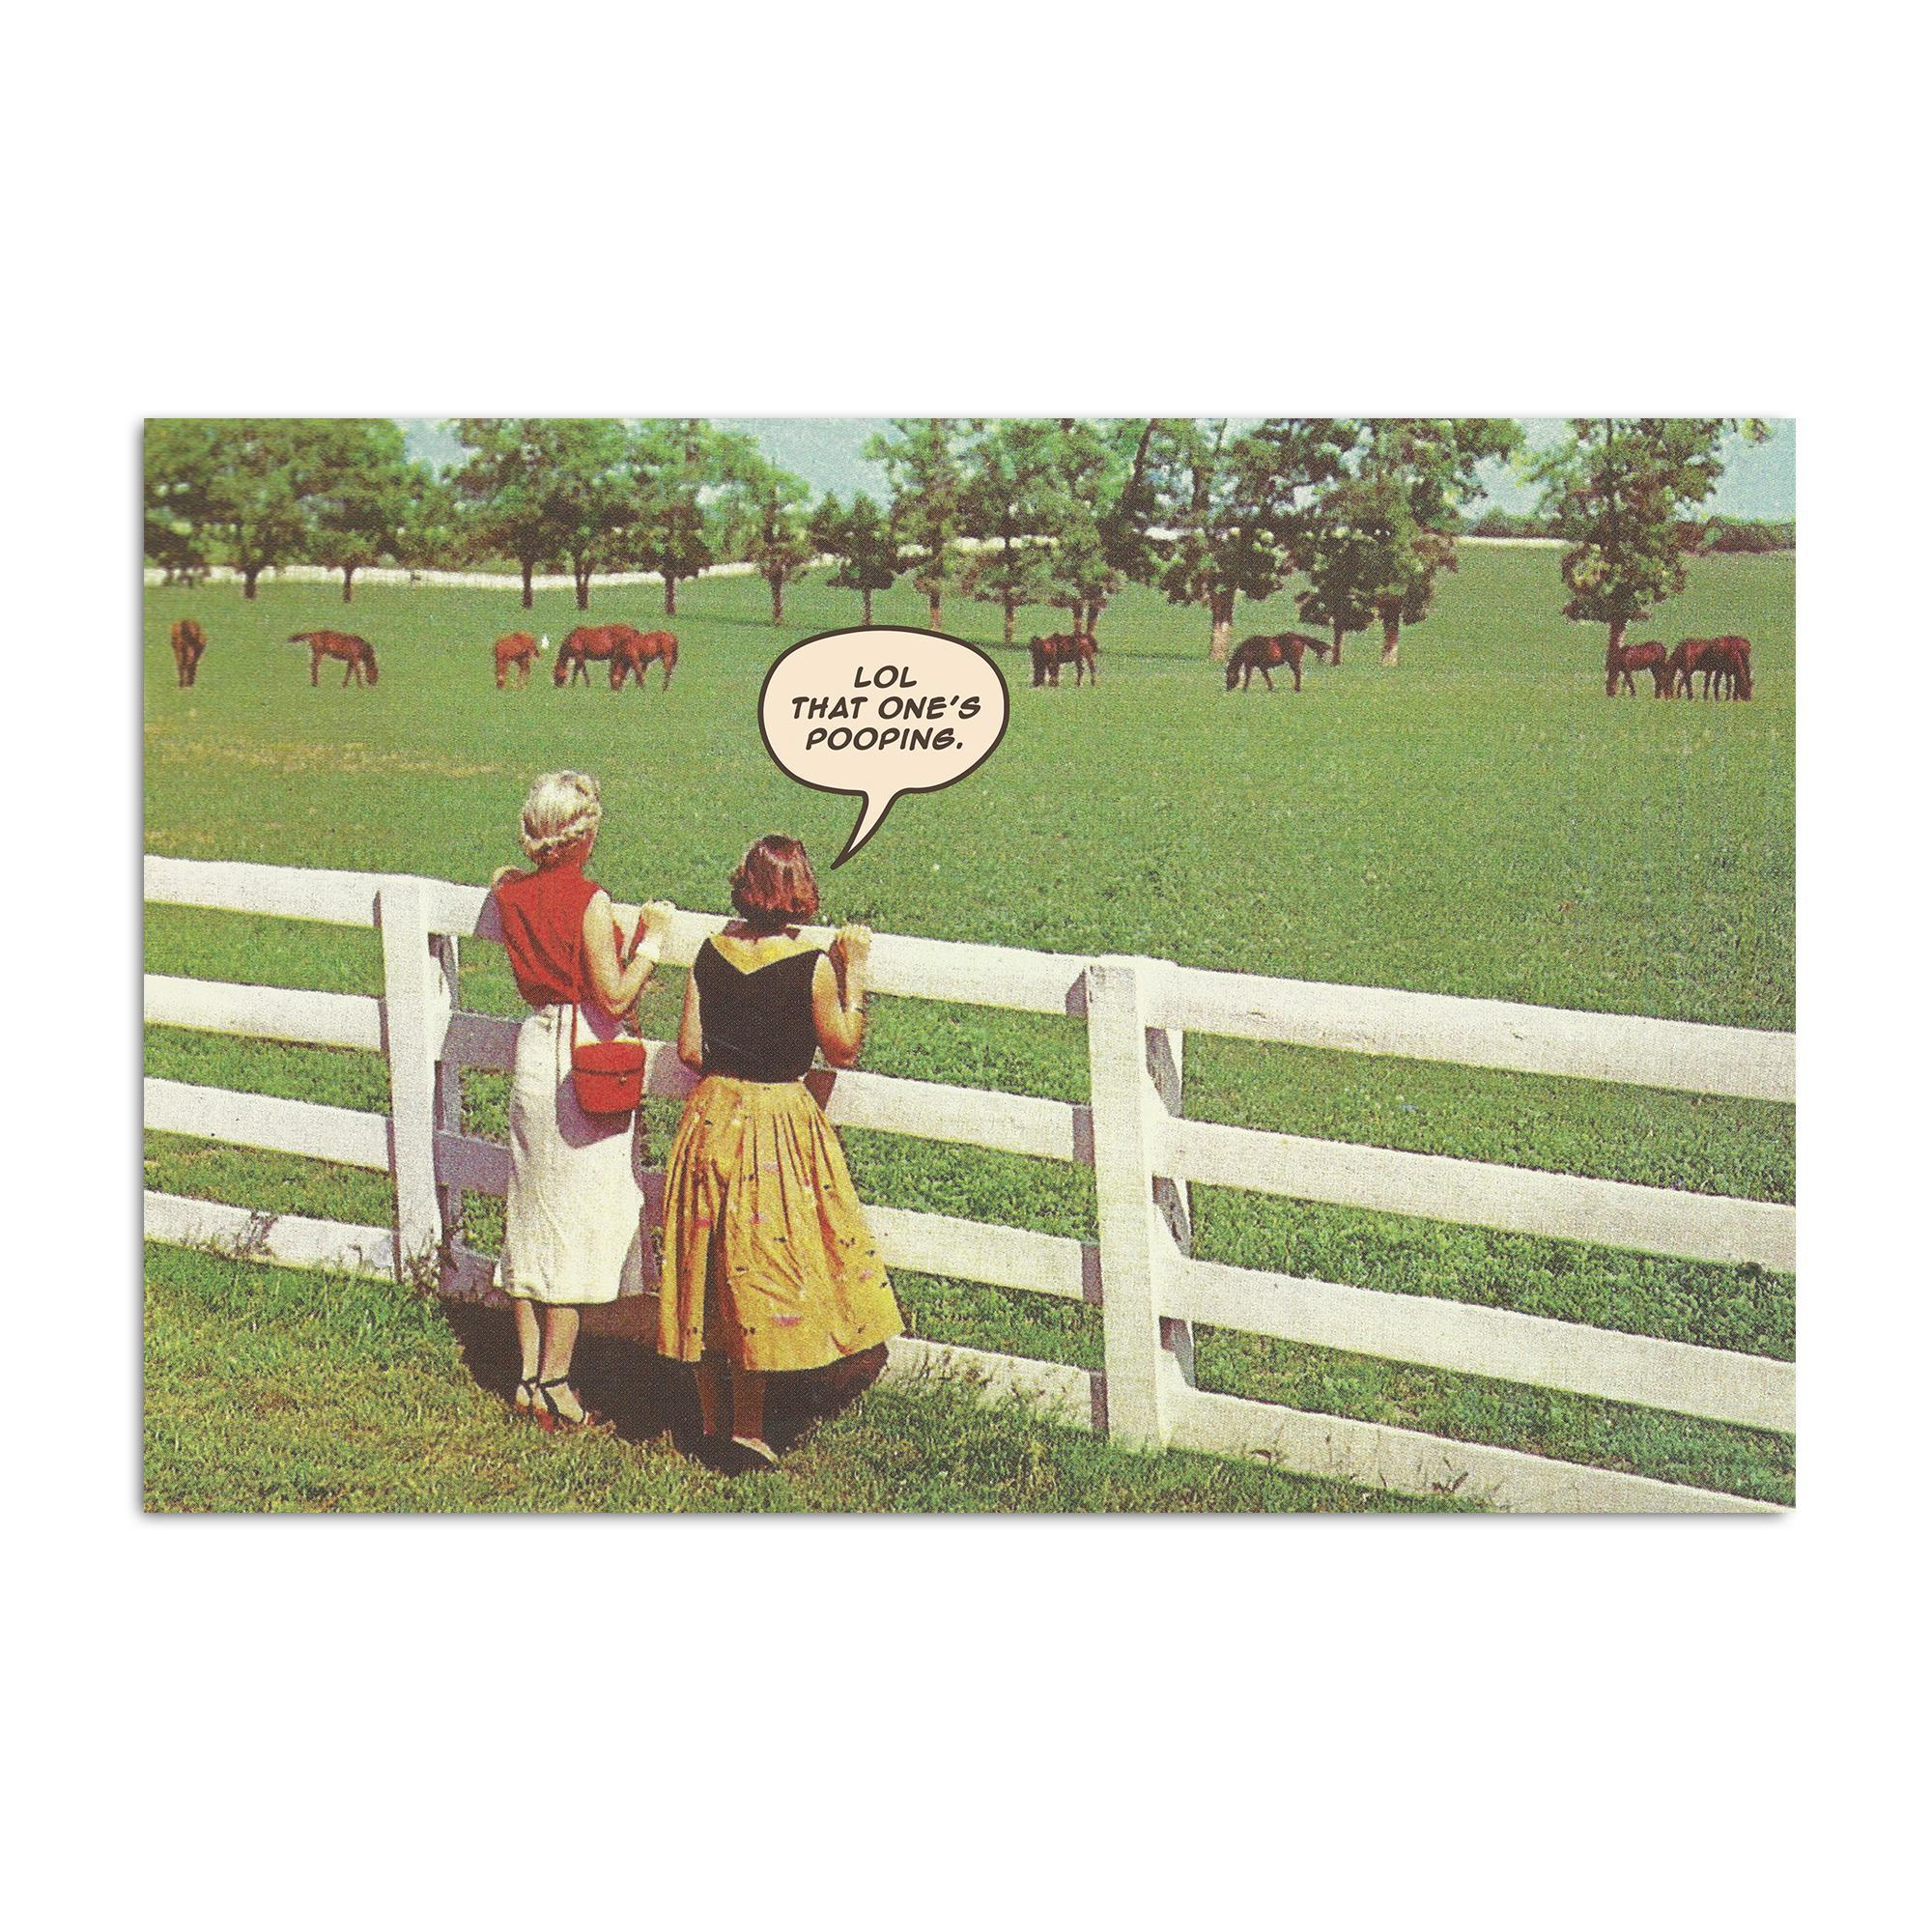 Horse Pooping Postcard-Odds and Ends-KY for KY Store